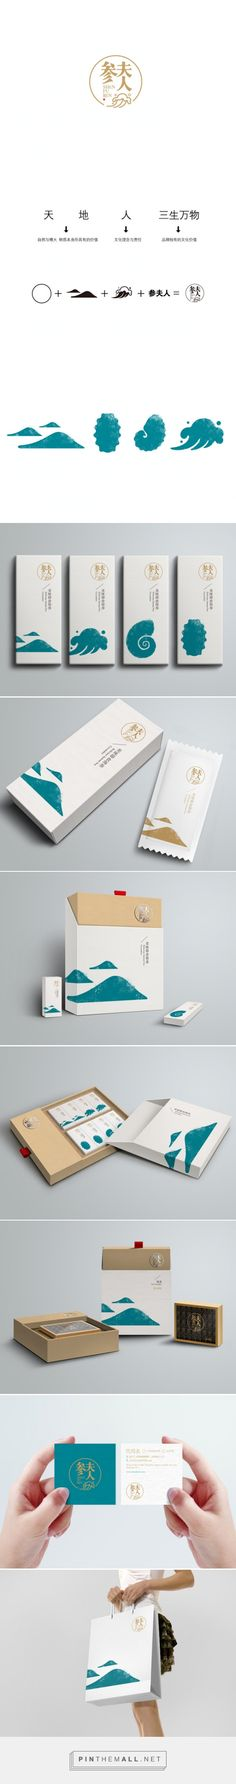 Shen Fu Ren #Ginseng Products #packaging by Lan Sesh - http://www.packagingoftheworld.com/2015/01/shen-fu-ren-ginseng-products.html